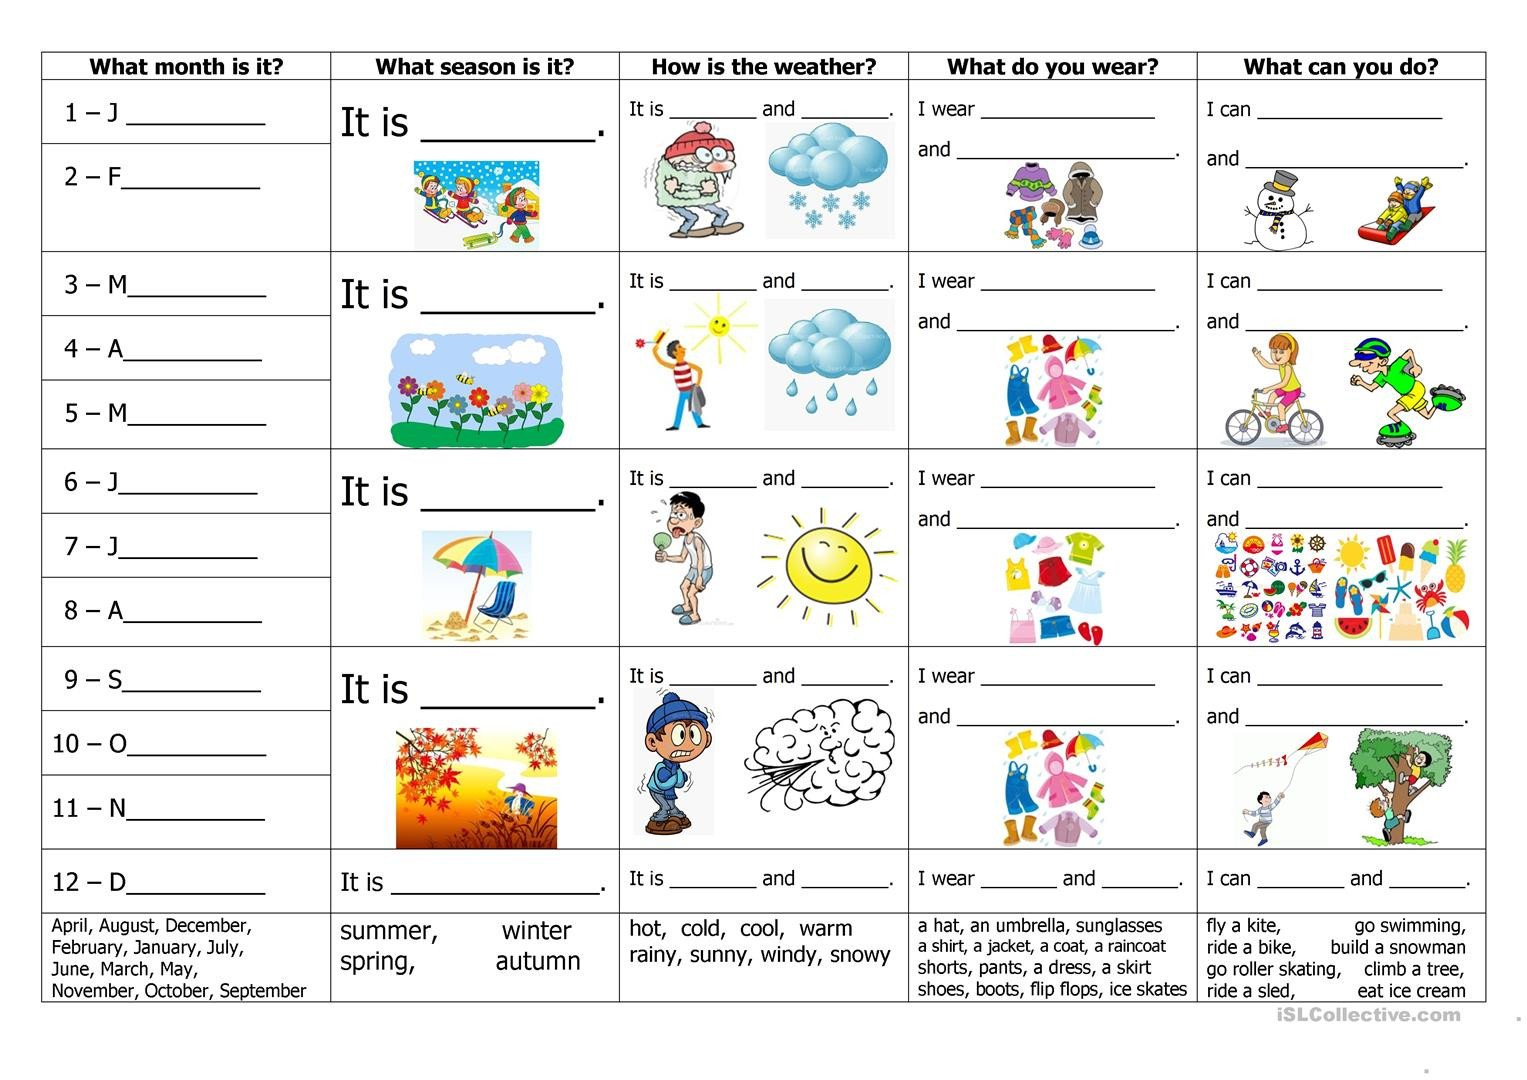 Spanish Months and Seasons Worksheets Months Seasons Weather Clothes and Activities English